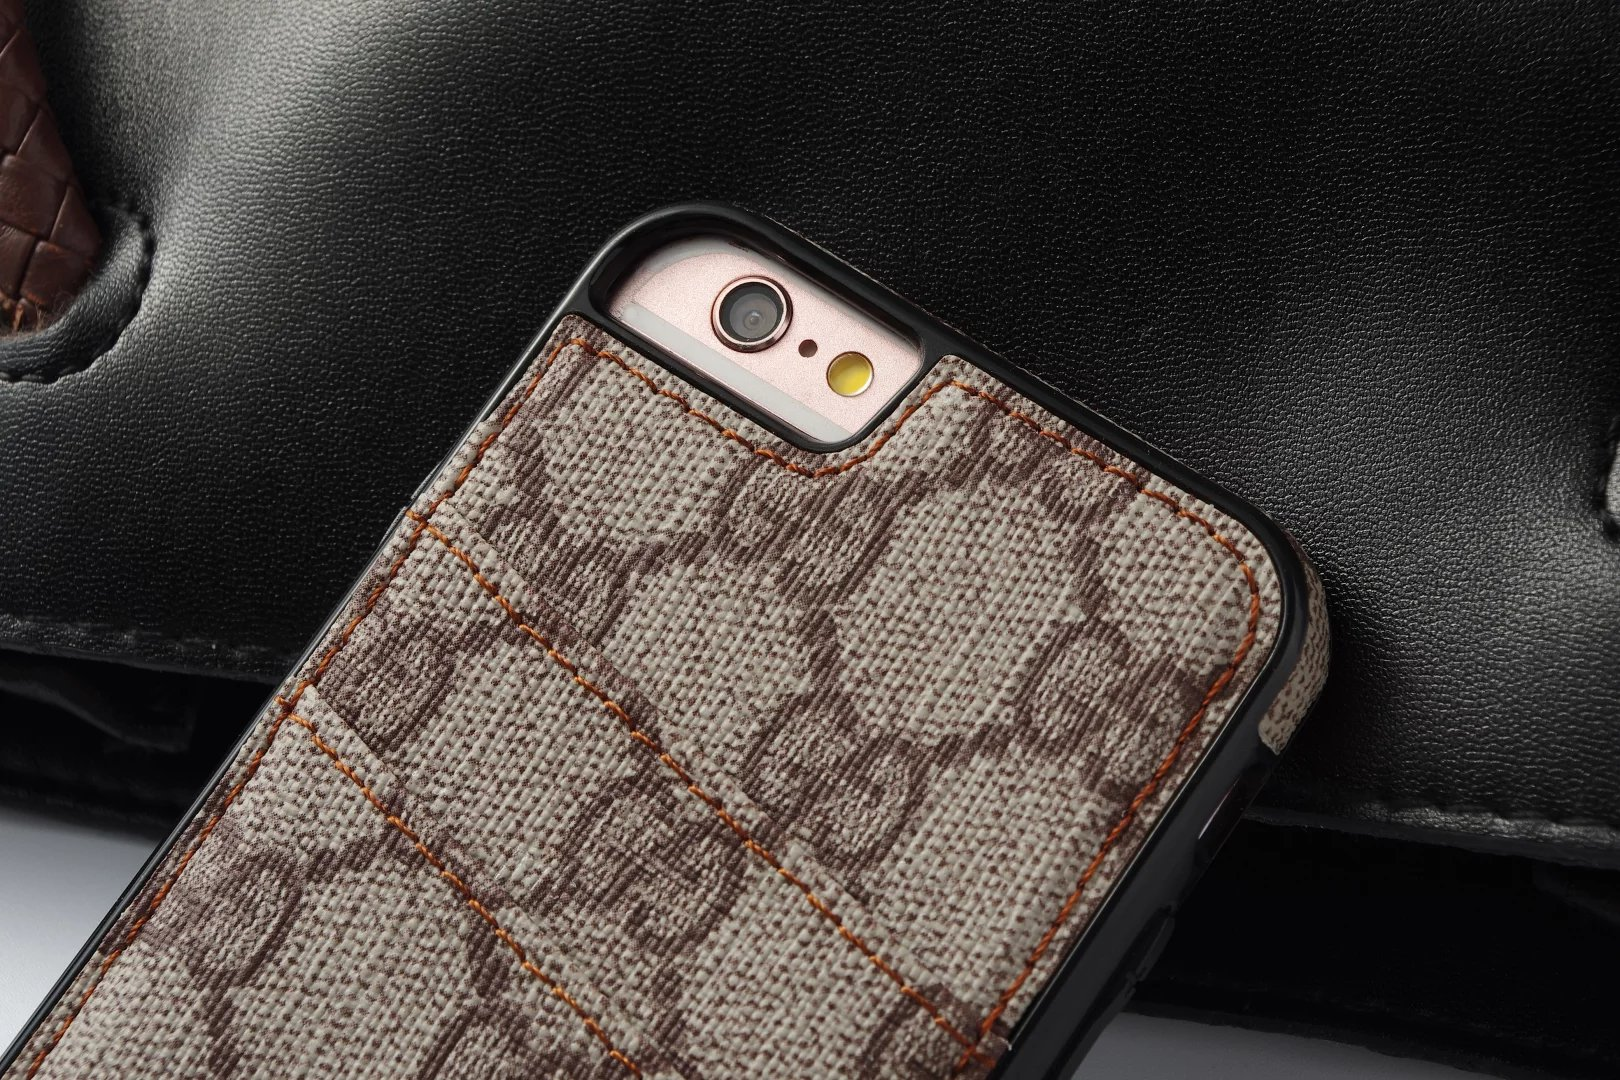 shop iphone 8 Plus cases iphone cases for iphone 8 Plus Louis Vuitton iphone 8 Plus case different iPhone 8 Plus cases cell phone jack juice pack iphone fashion case iPhone 8 Plus phone cases and skins phone casings